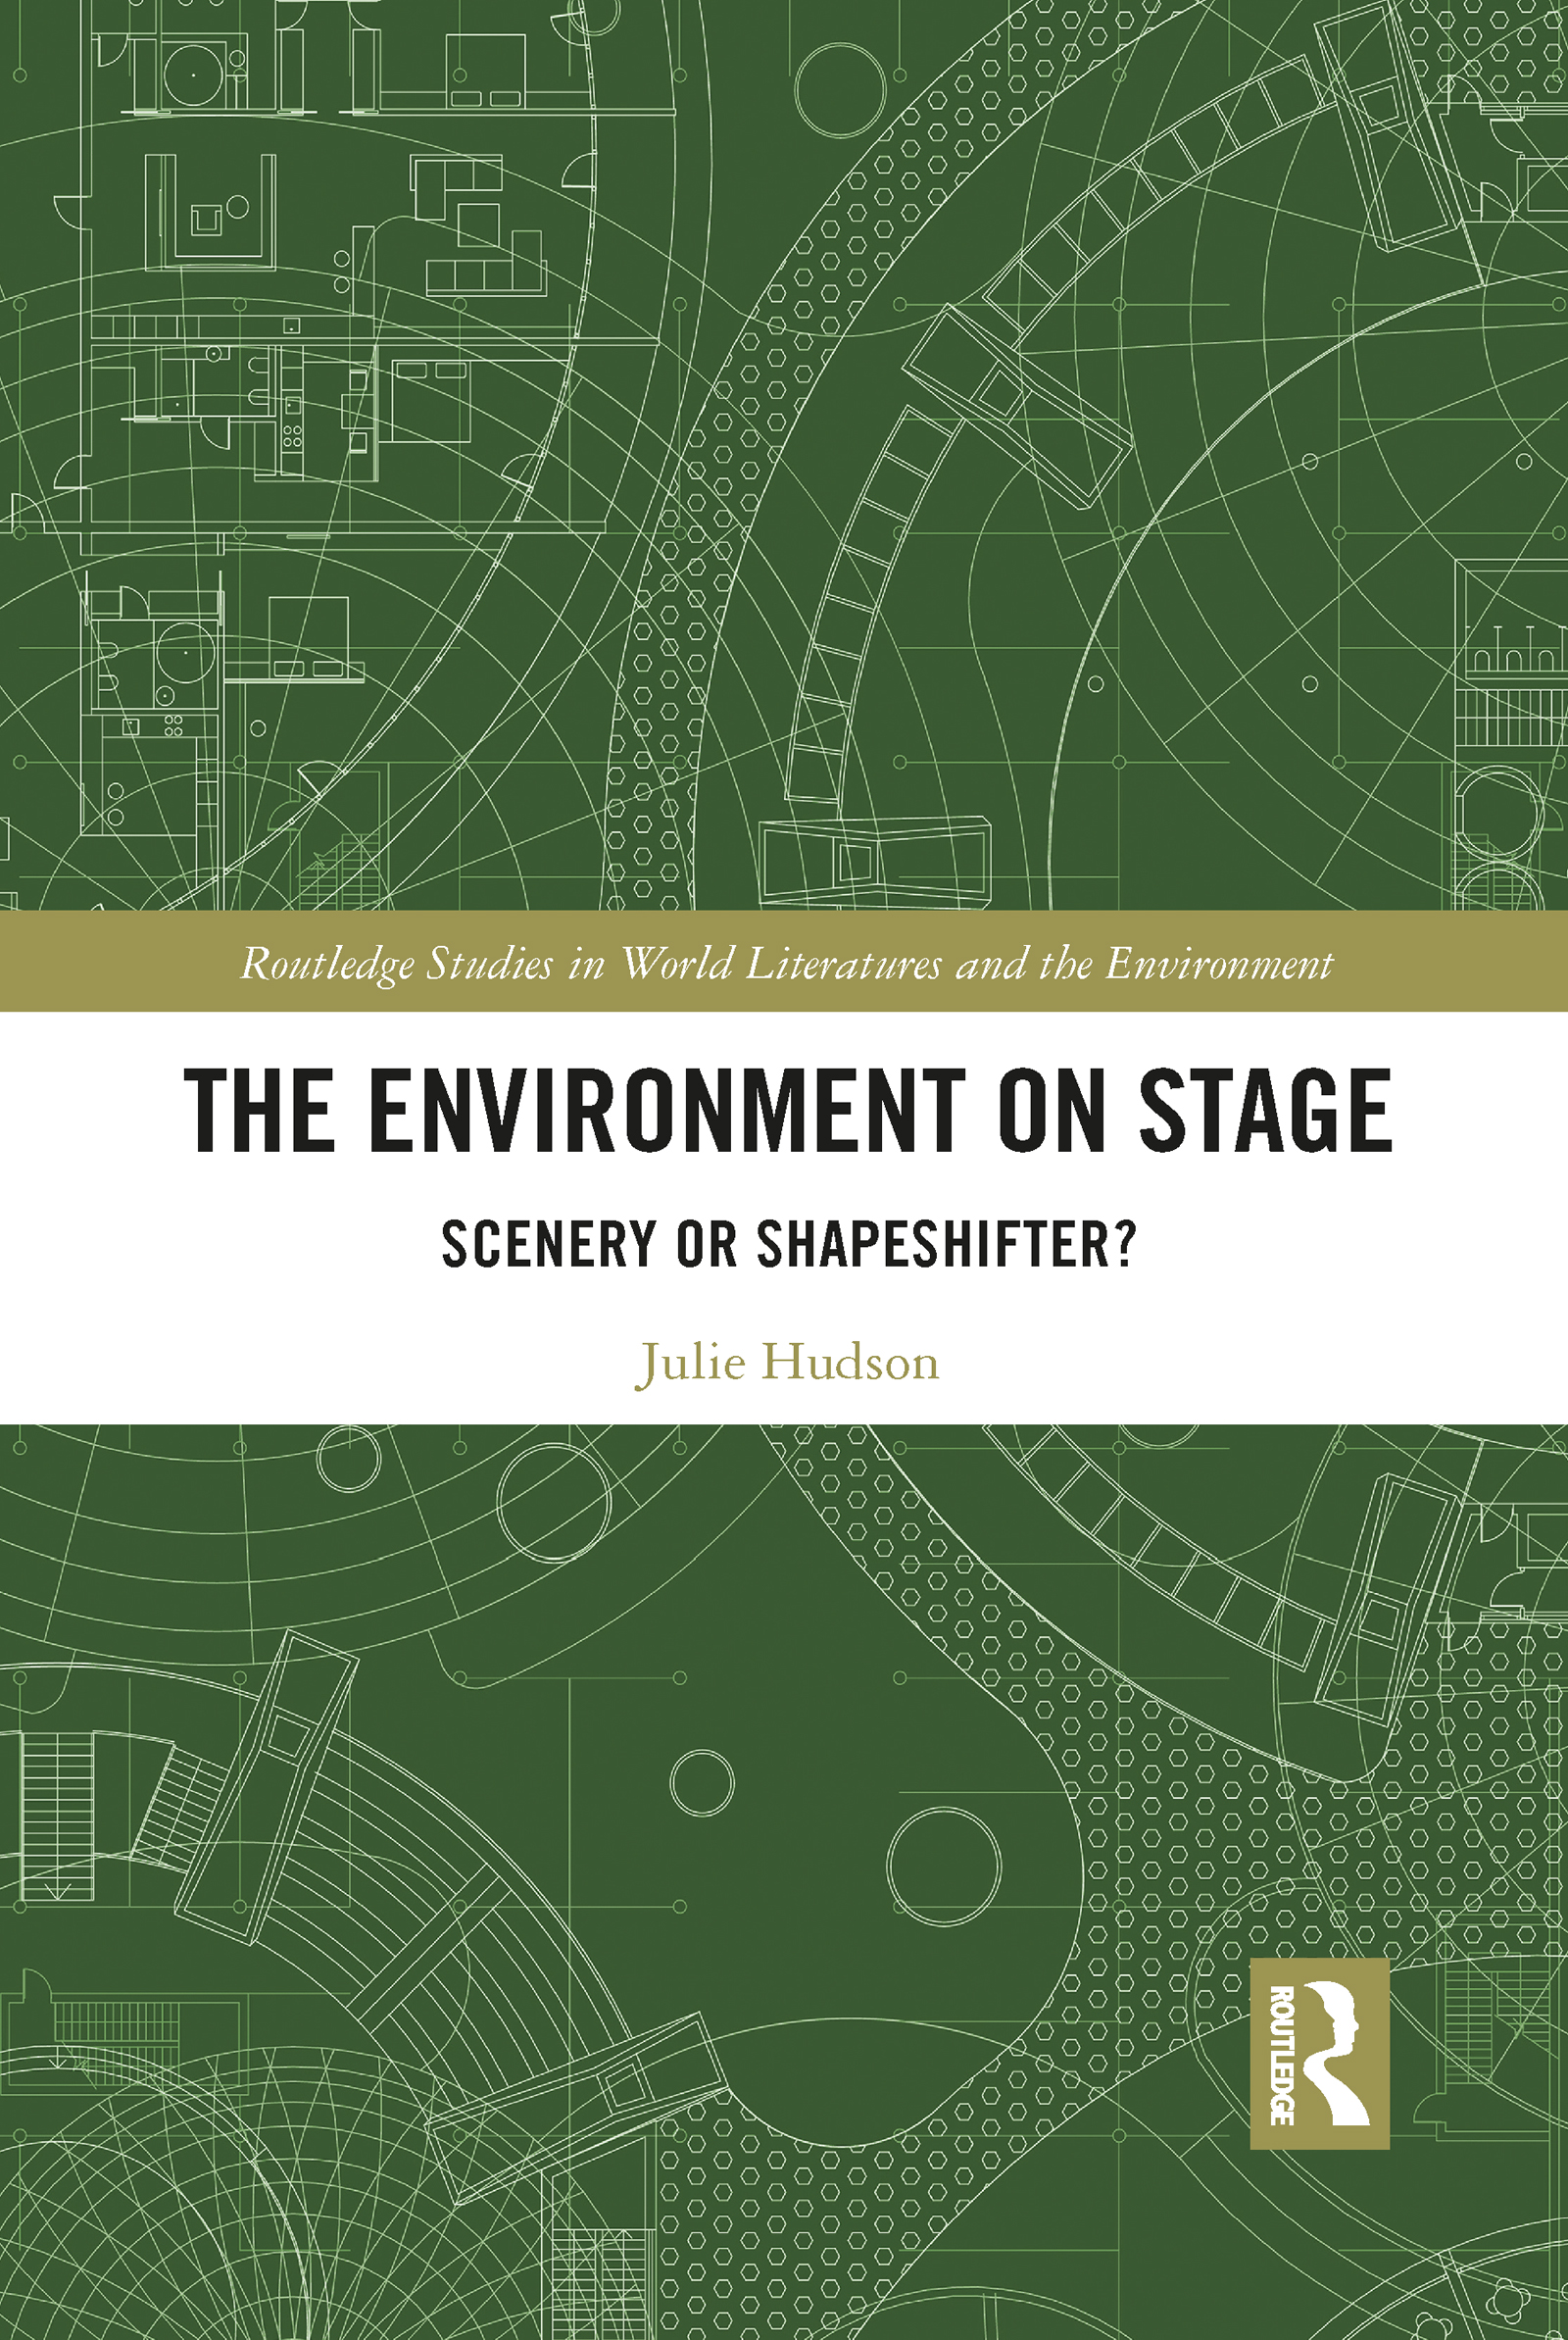 The Environment on Stage